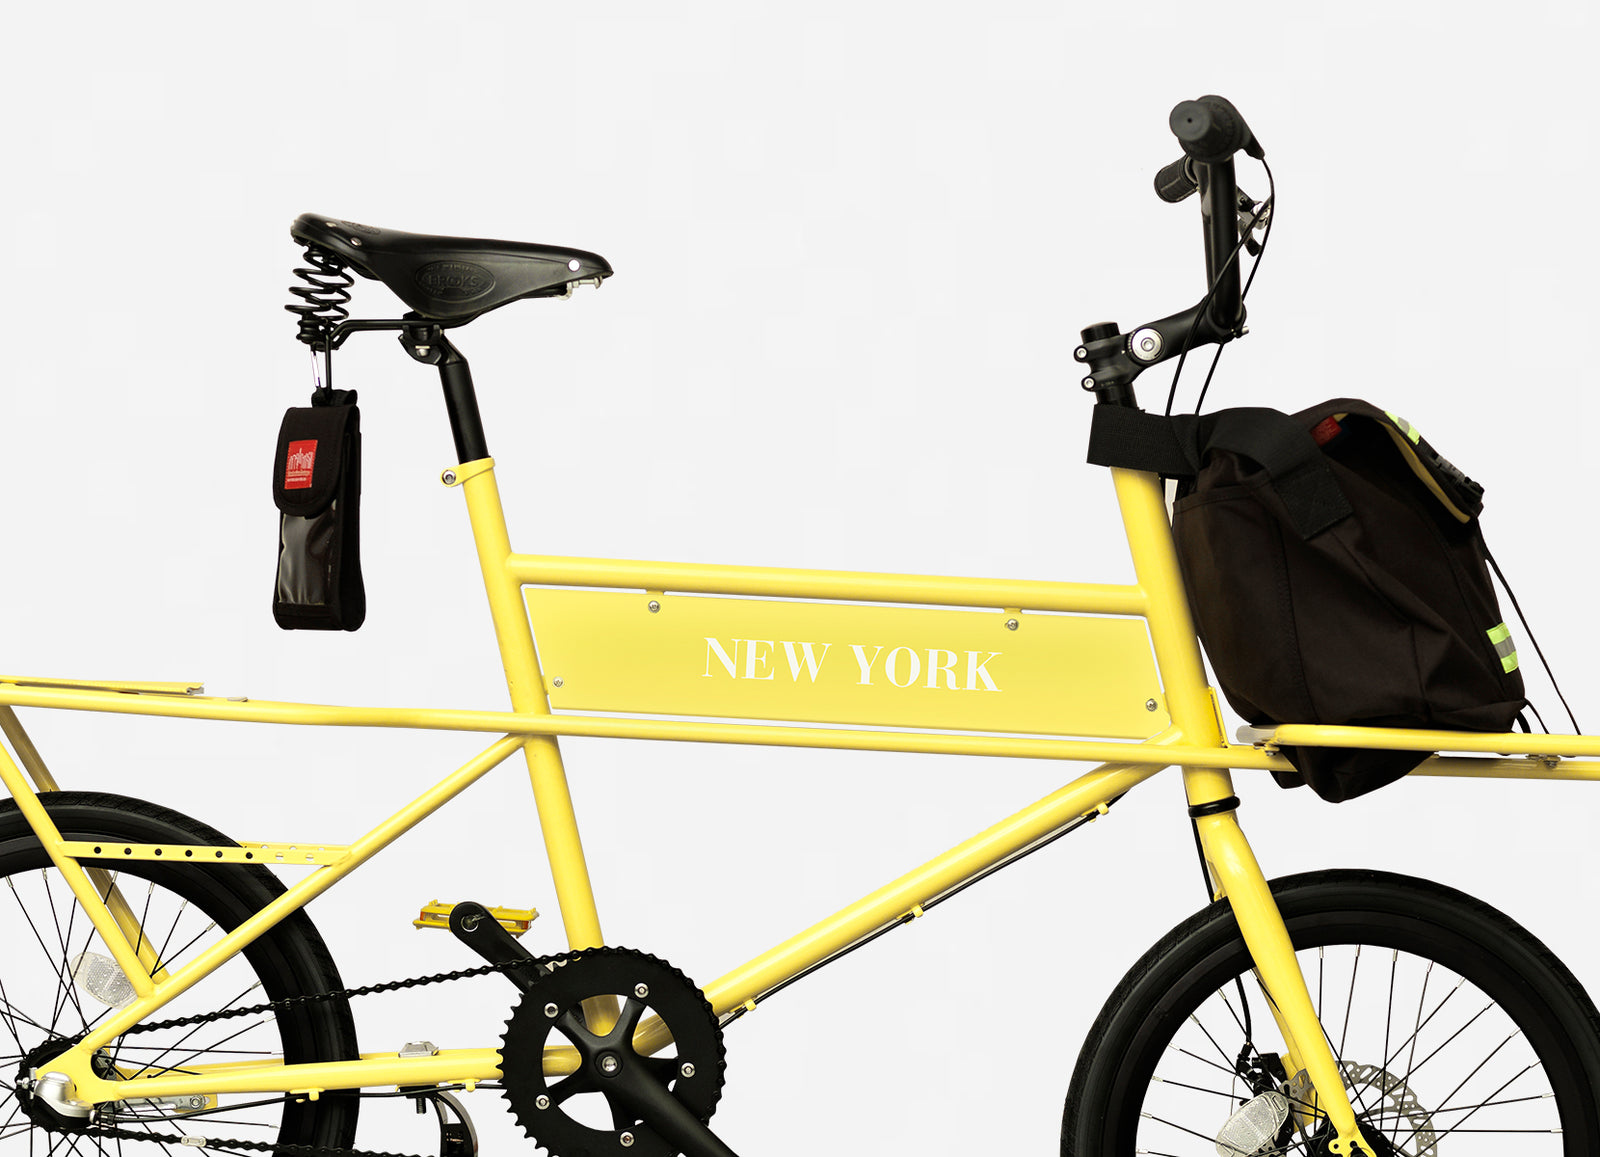 The New York bicycle